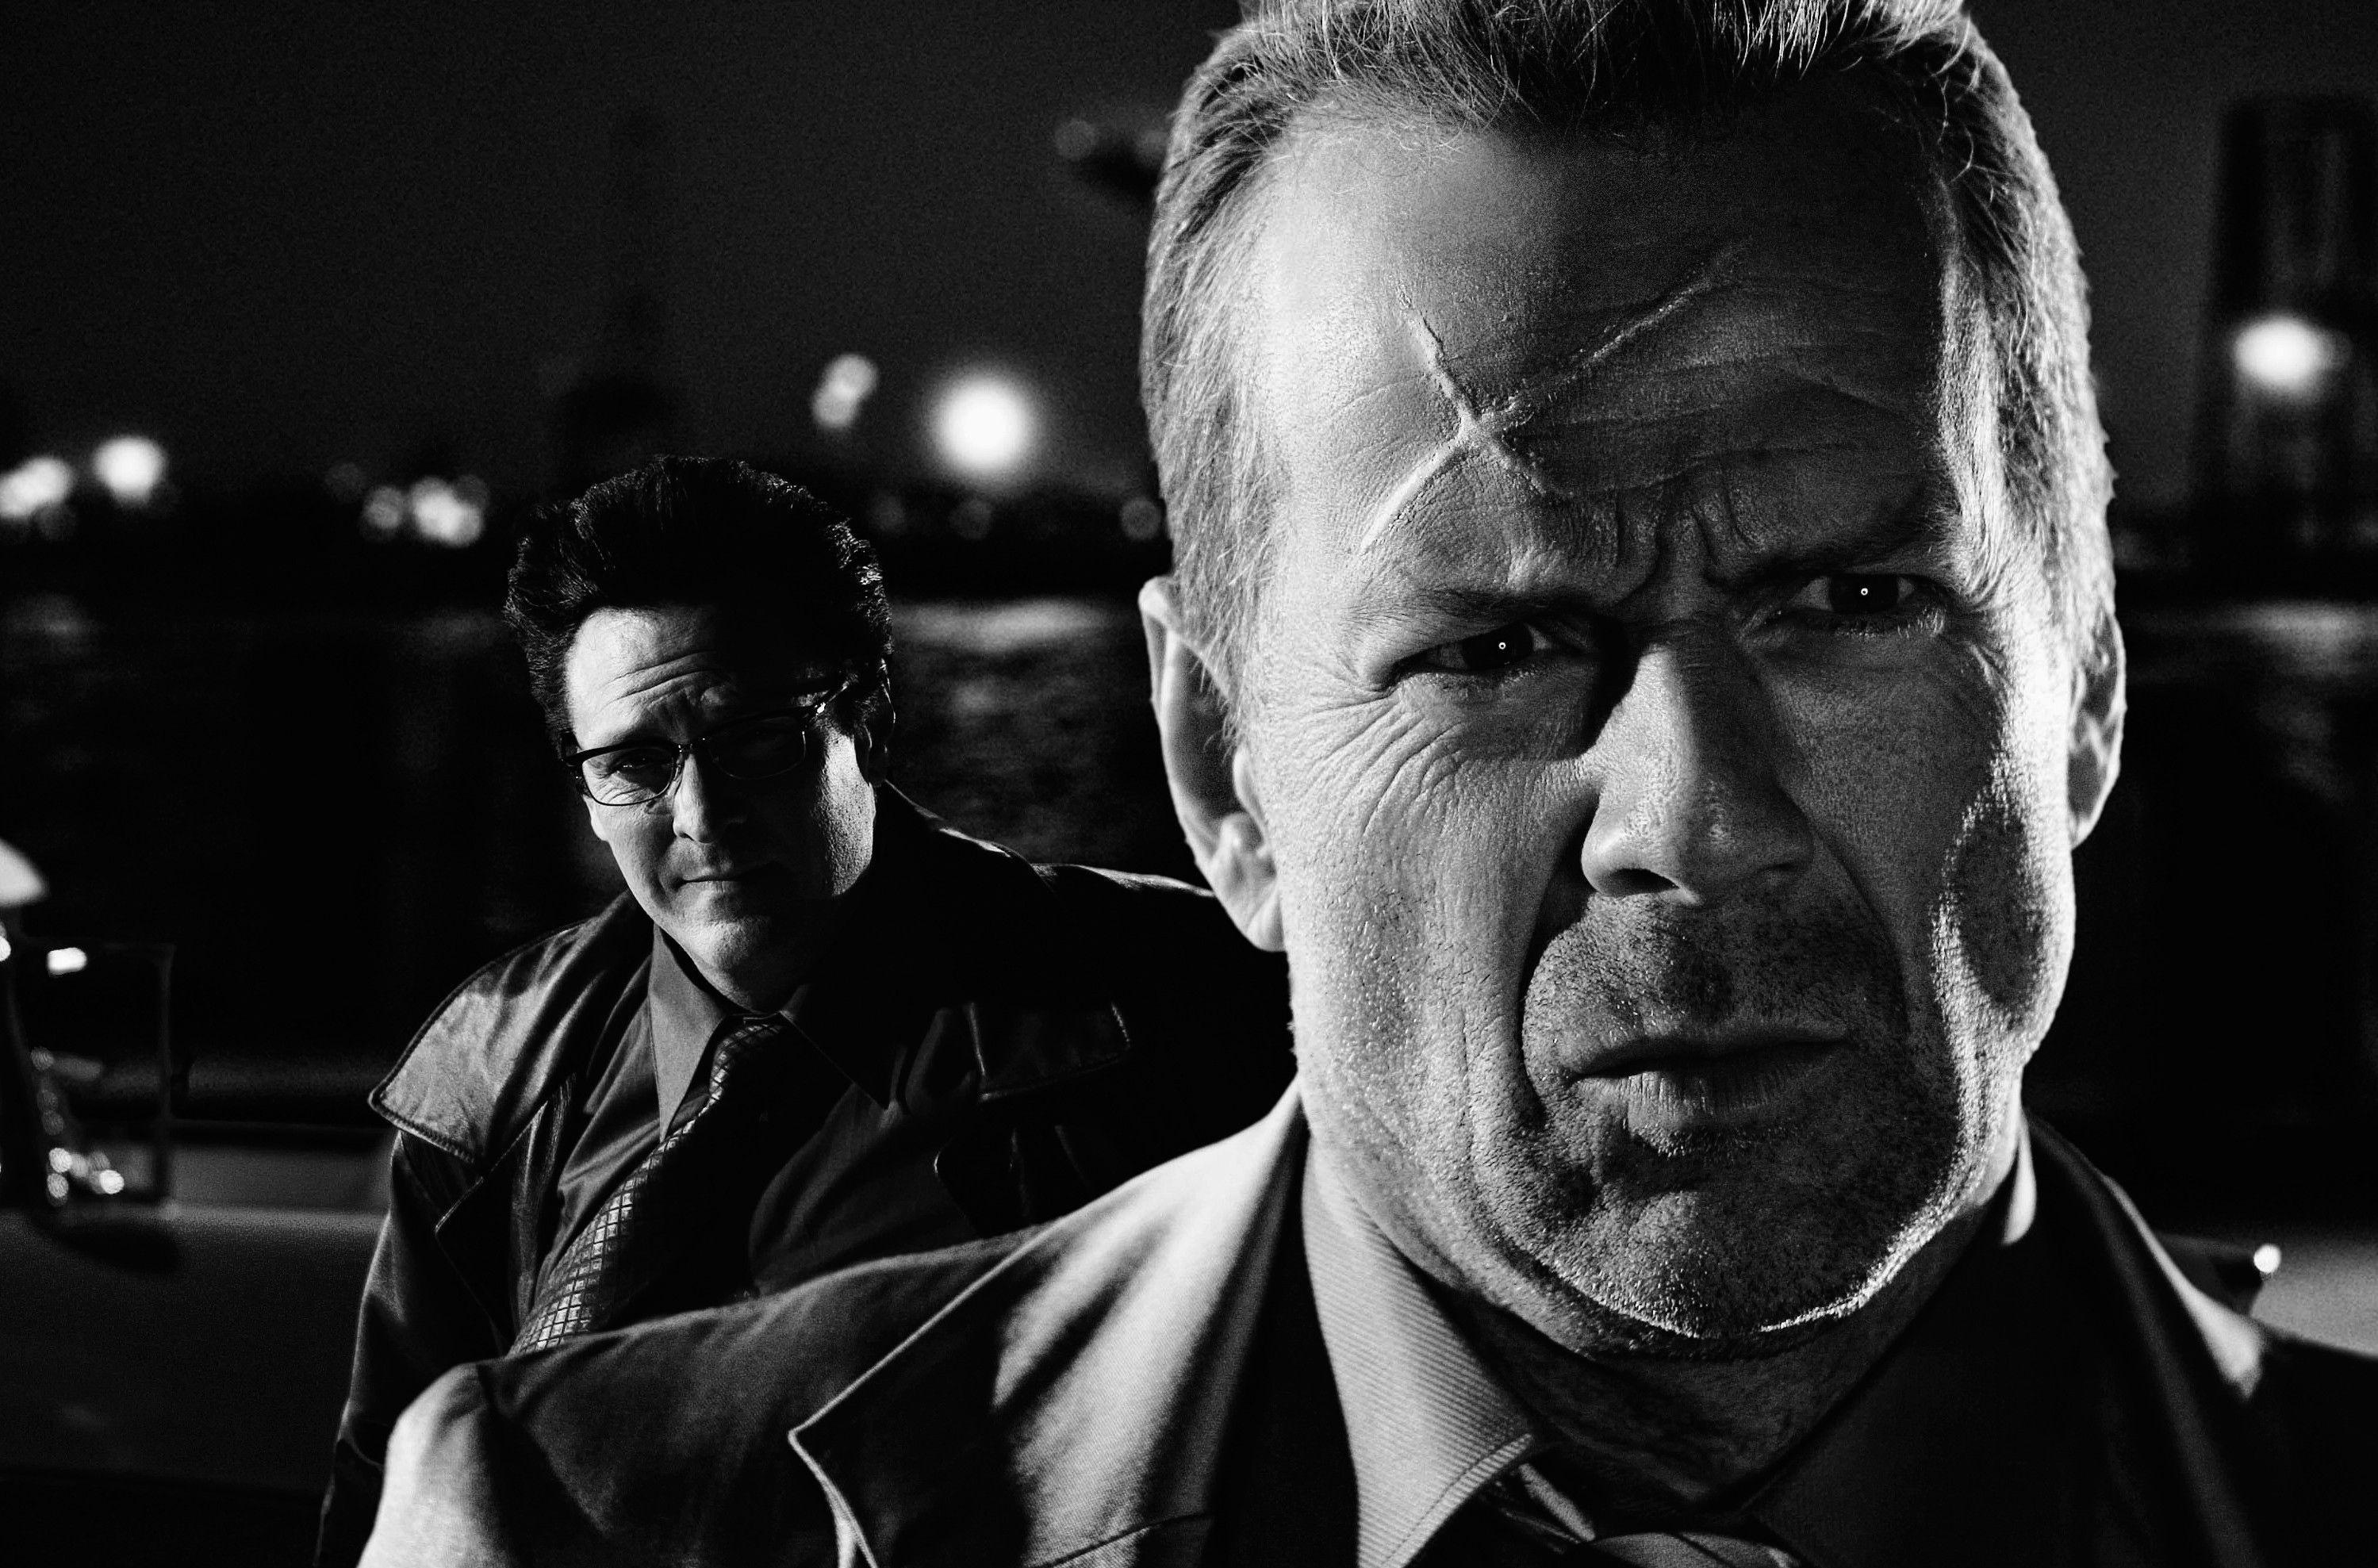 bruce willis sin city michael madsen movies Wallpapers HD ...